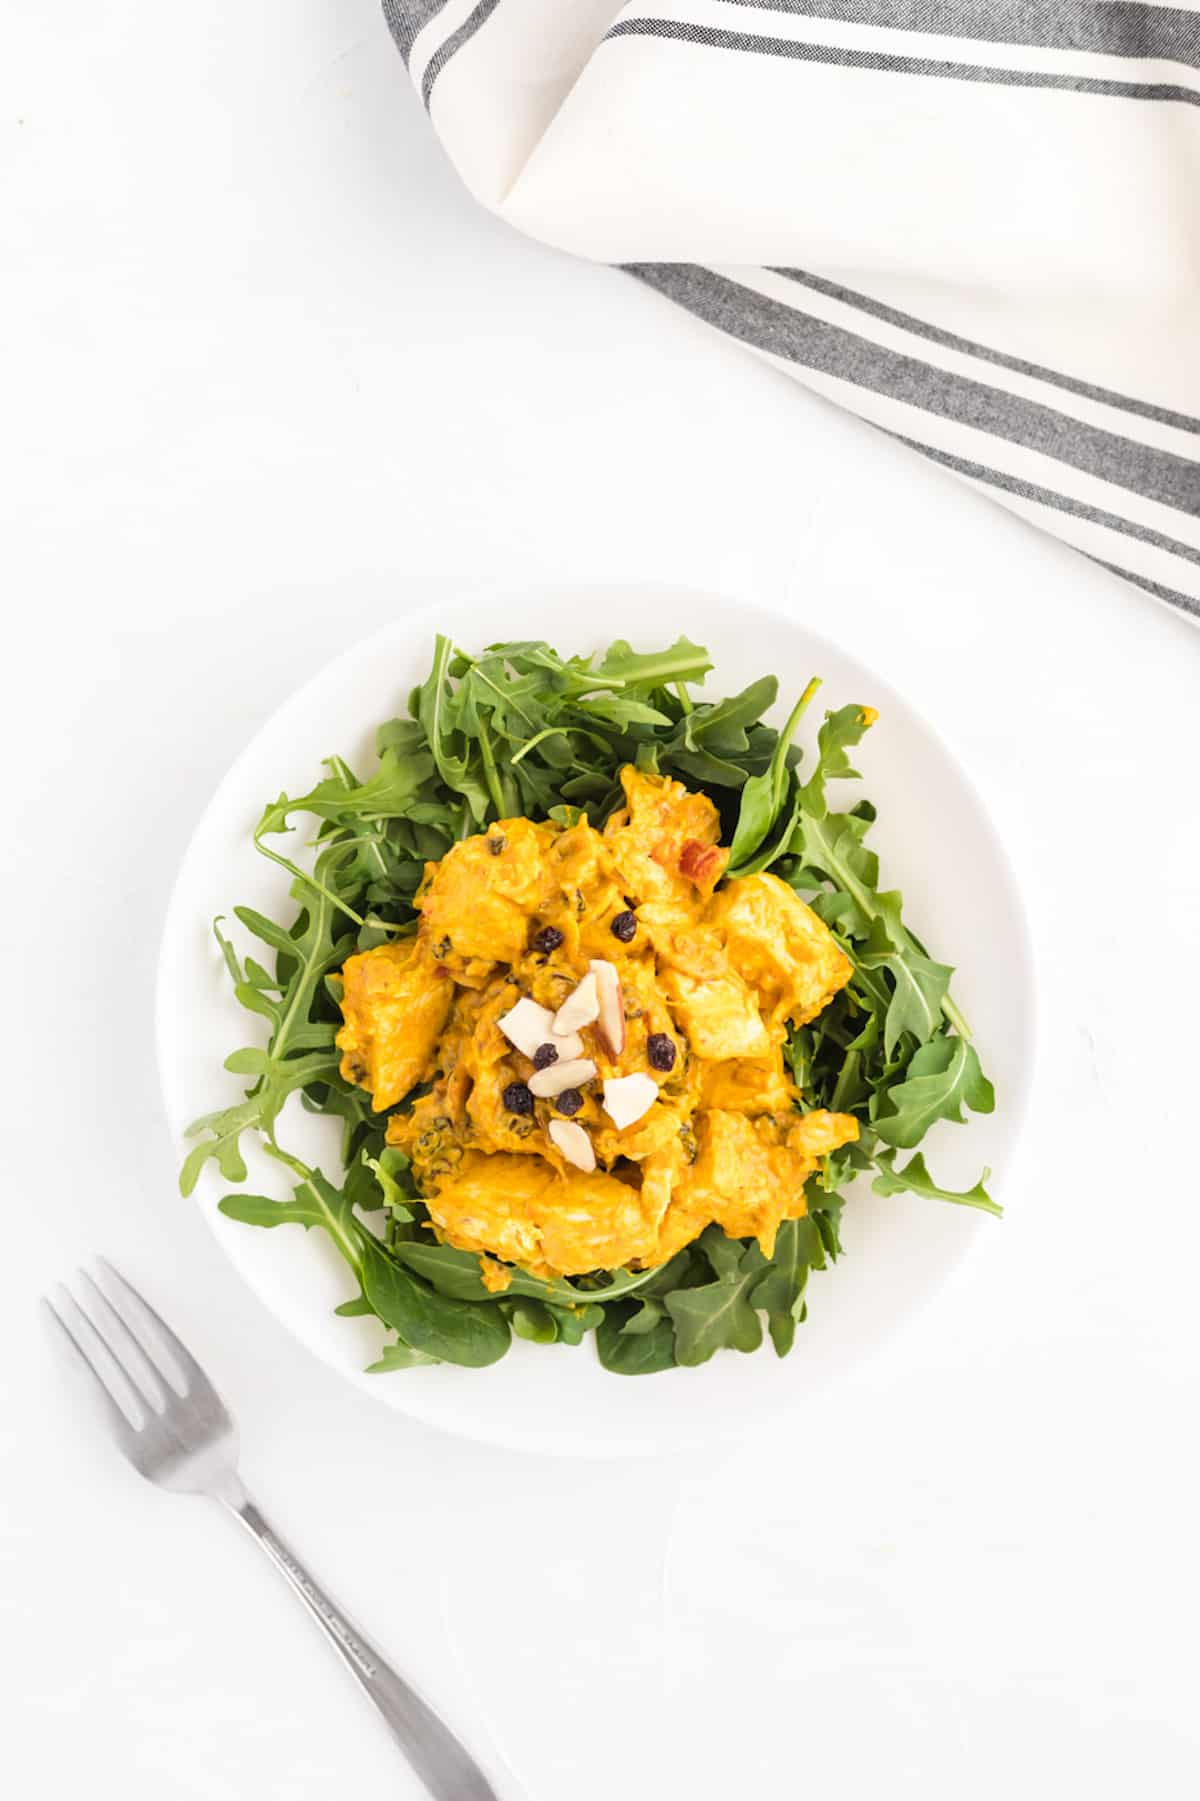 A plate of curry chicken salad on arugula